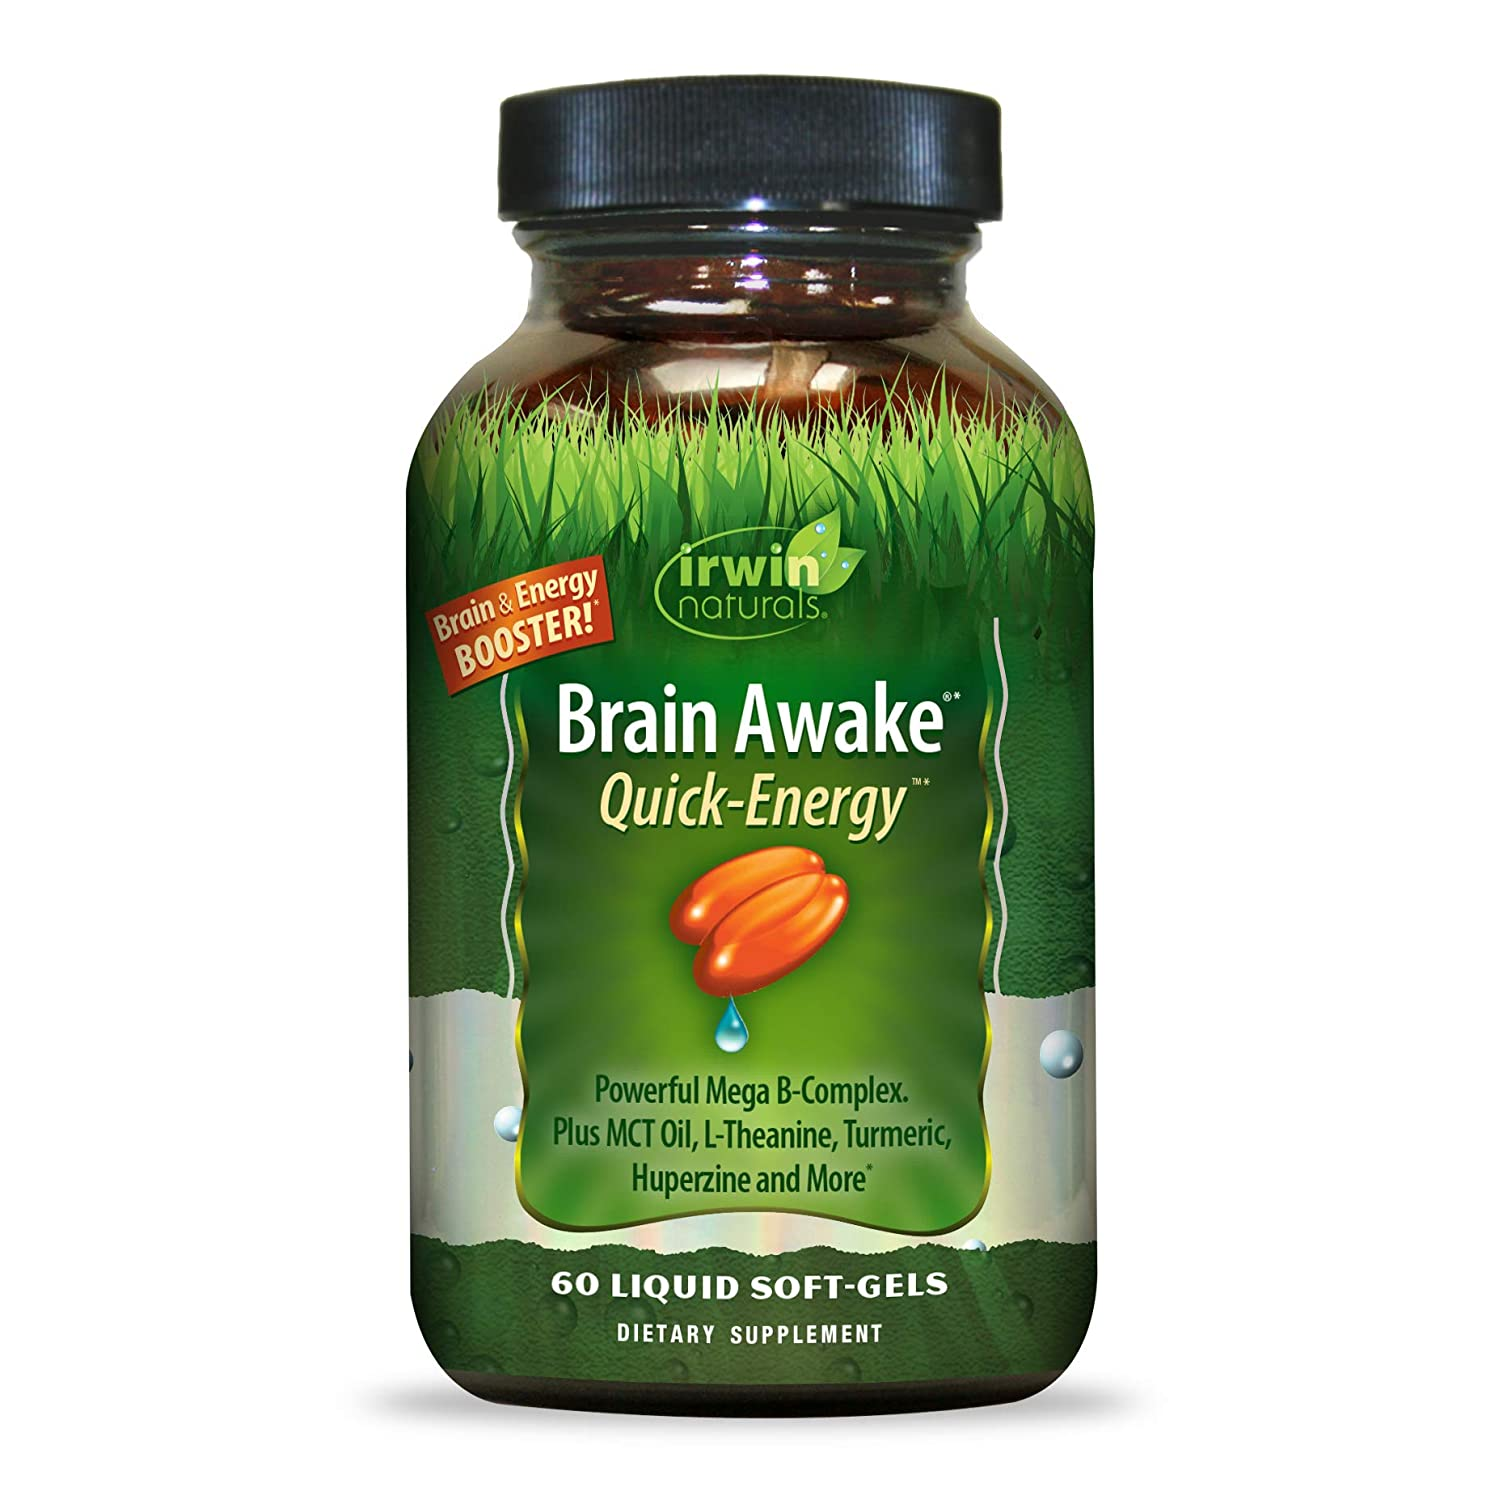 Irwin Naturals Brain Awake Quick Energy Booster – Enhance Mental Performance, Focus, Clarity – Powerful Mega B Complex, MCT Oil, Ginkgo, L-Theanine Huperzine – 60 Liquid Softgels